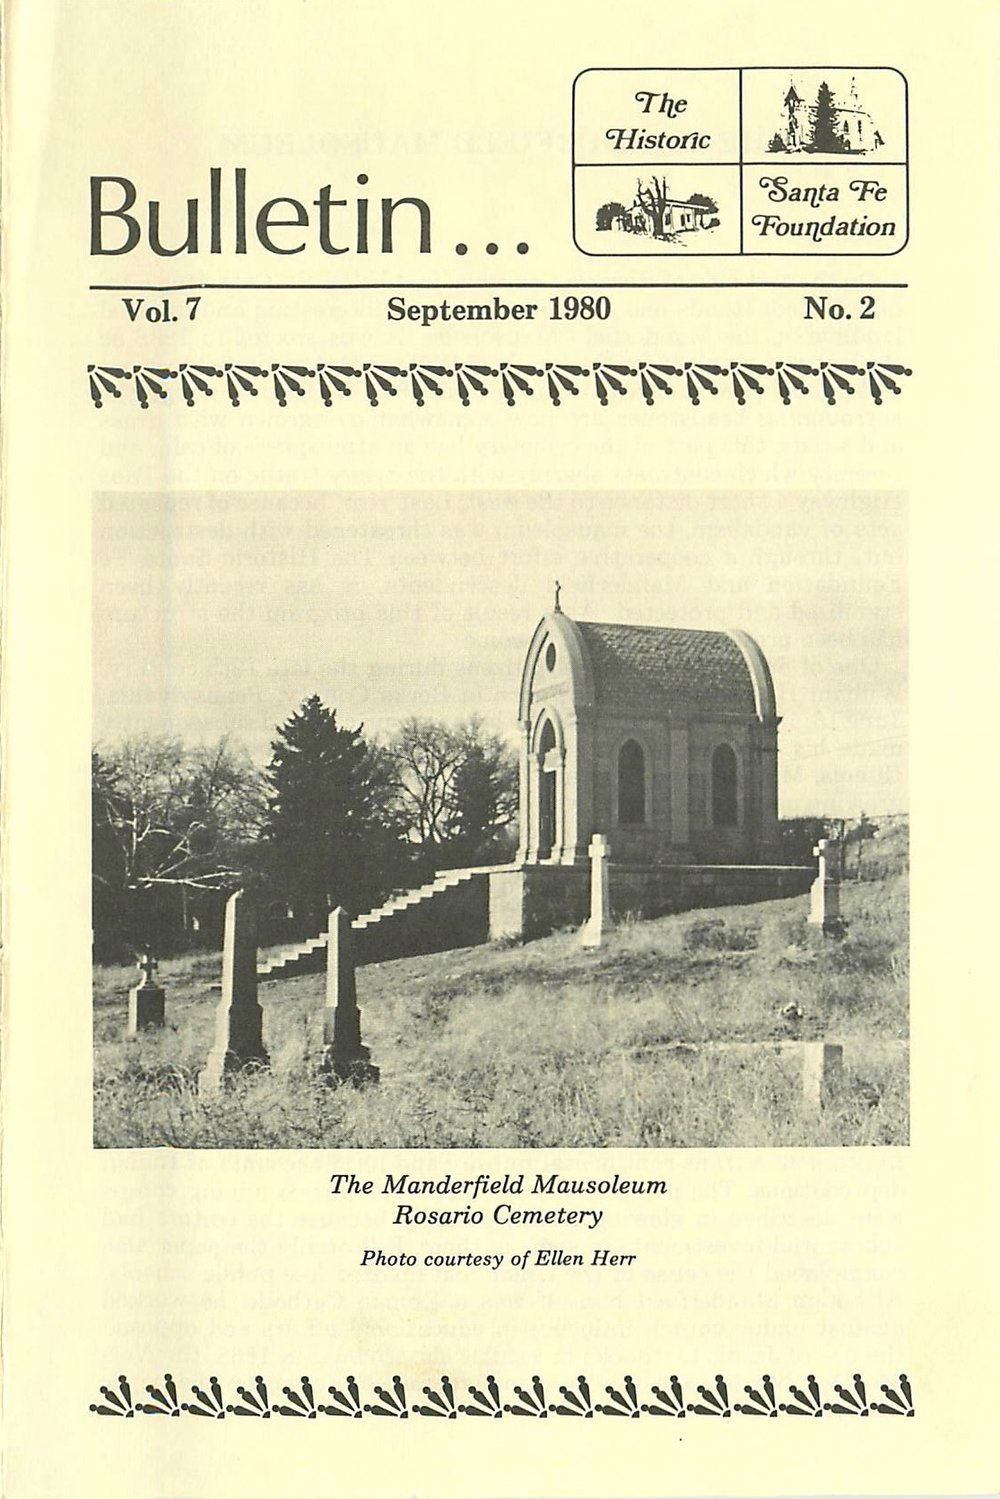 1980 HSFF Bulletin Vol.7 No.2 Cover